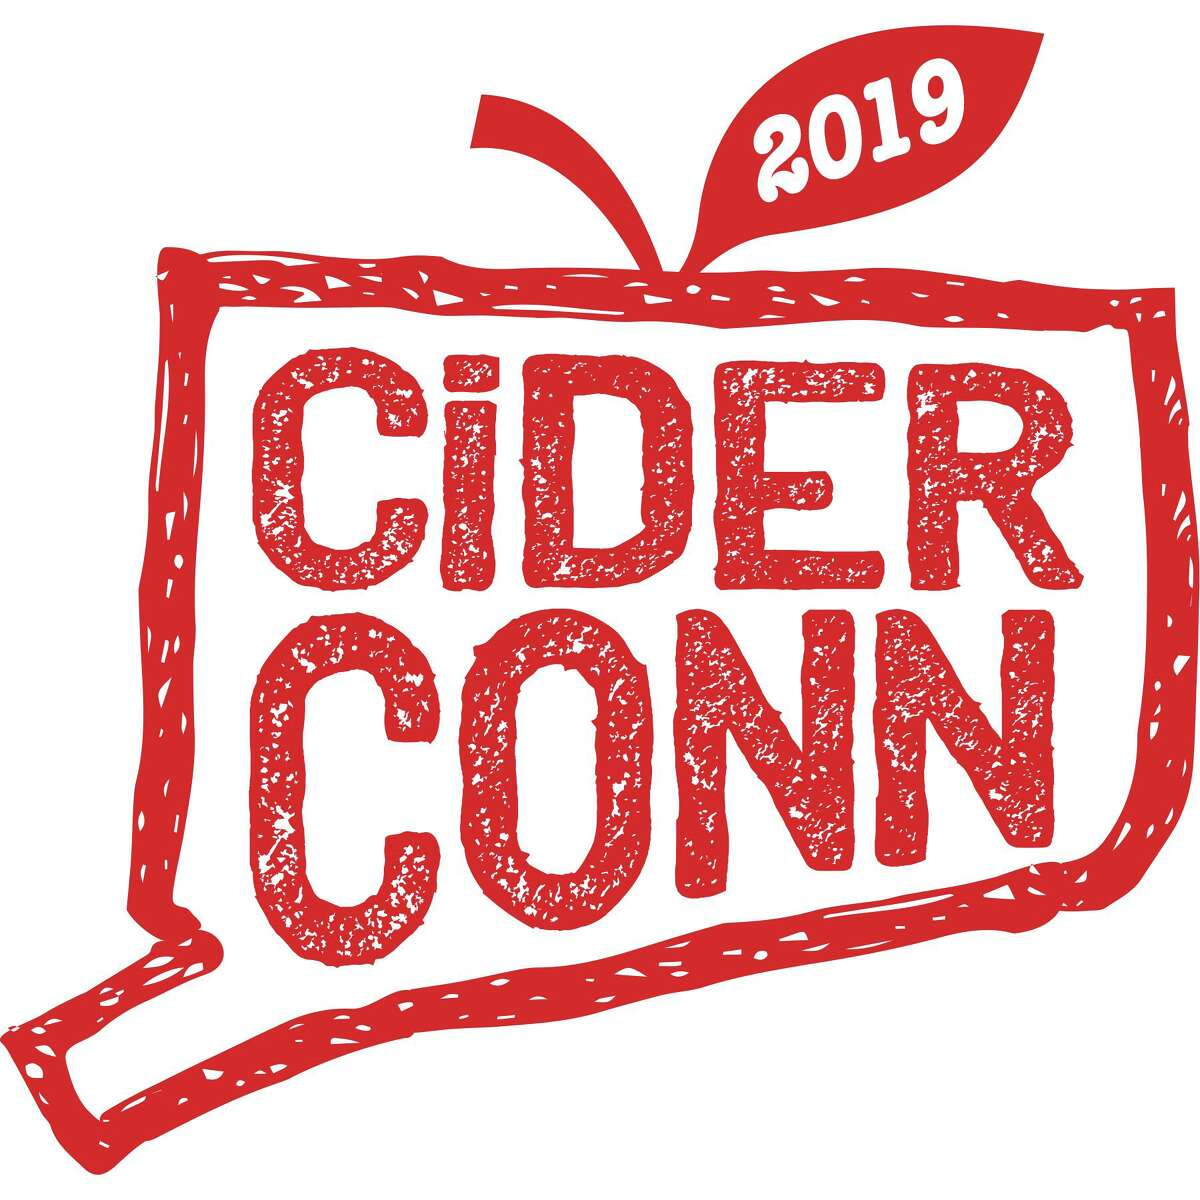 A cider fest, hosted by Middletown's Connecticut Cider Association, is slated for Nov. 9 in Wallingford.